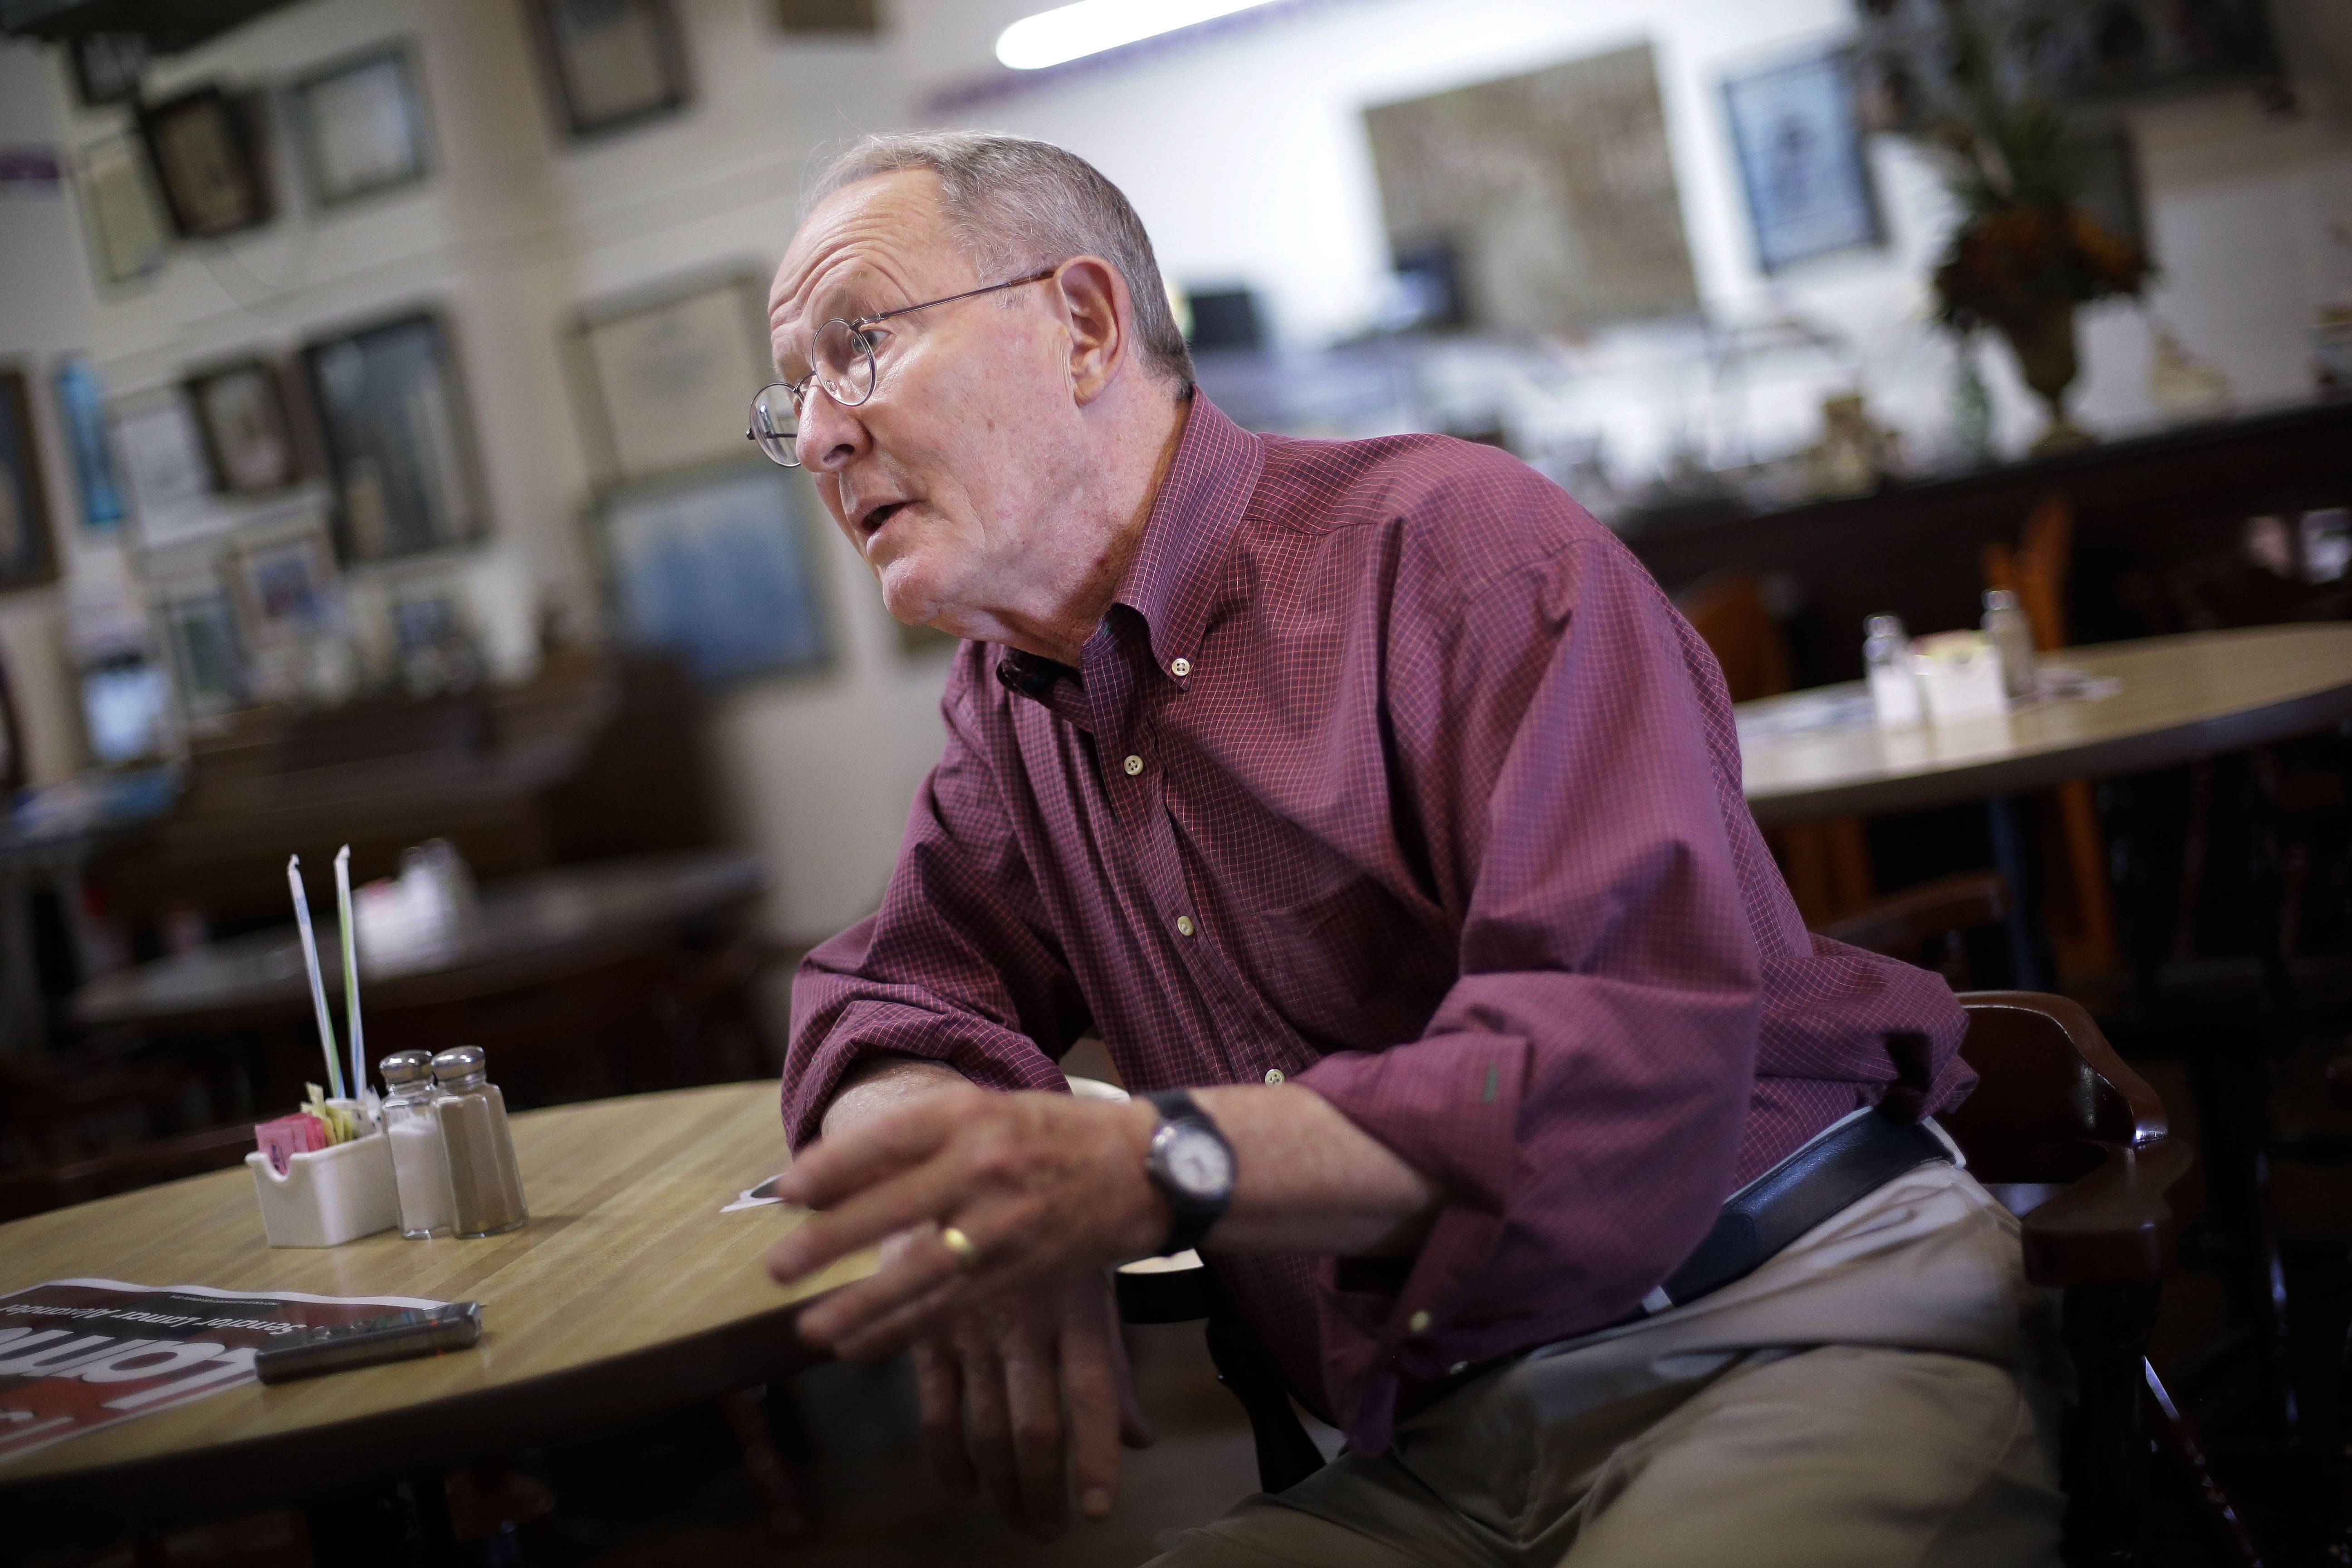 Sen. Lamar Alexander, R-Tenn., a 74-year-old incumbent, is seeking to fend off challenger Joe Carr in Tennessee's primary election Thursday. Carr has cast Alexander as out of touch with an increasingly conservative electorate.